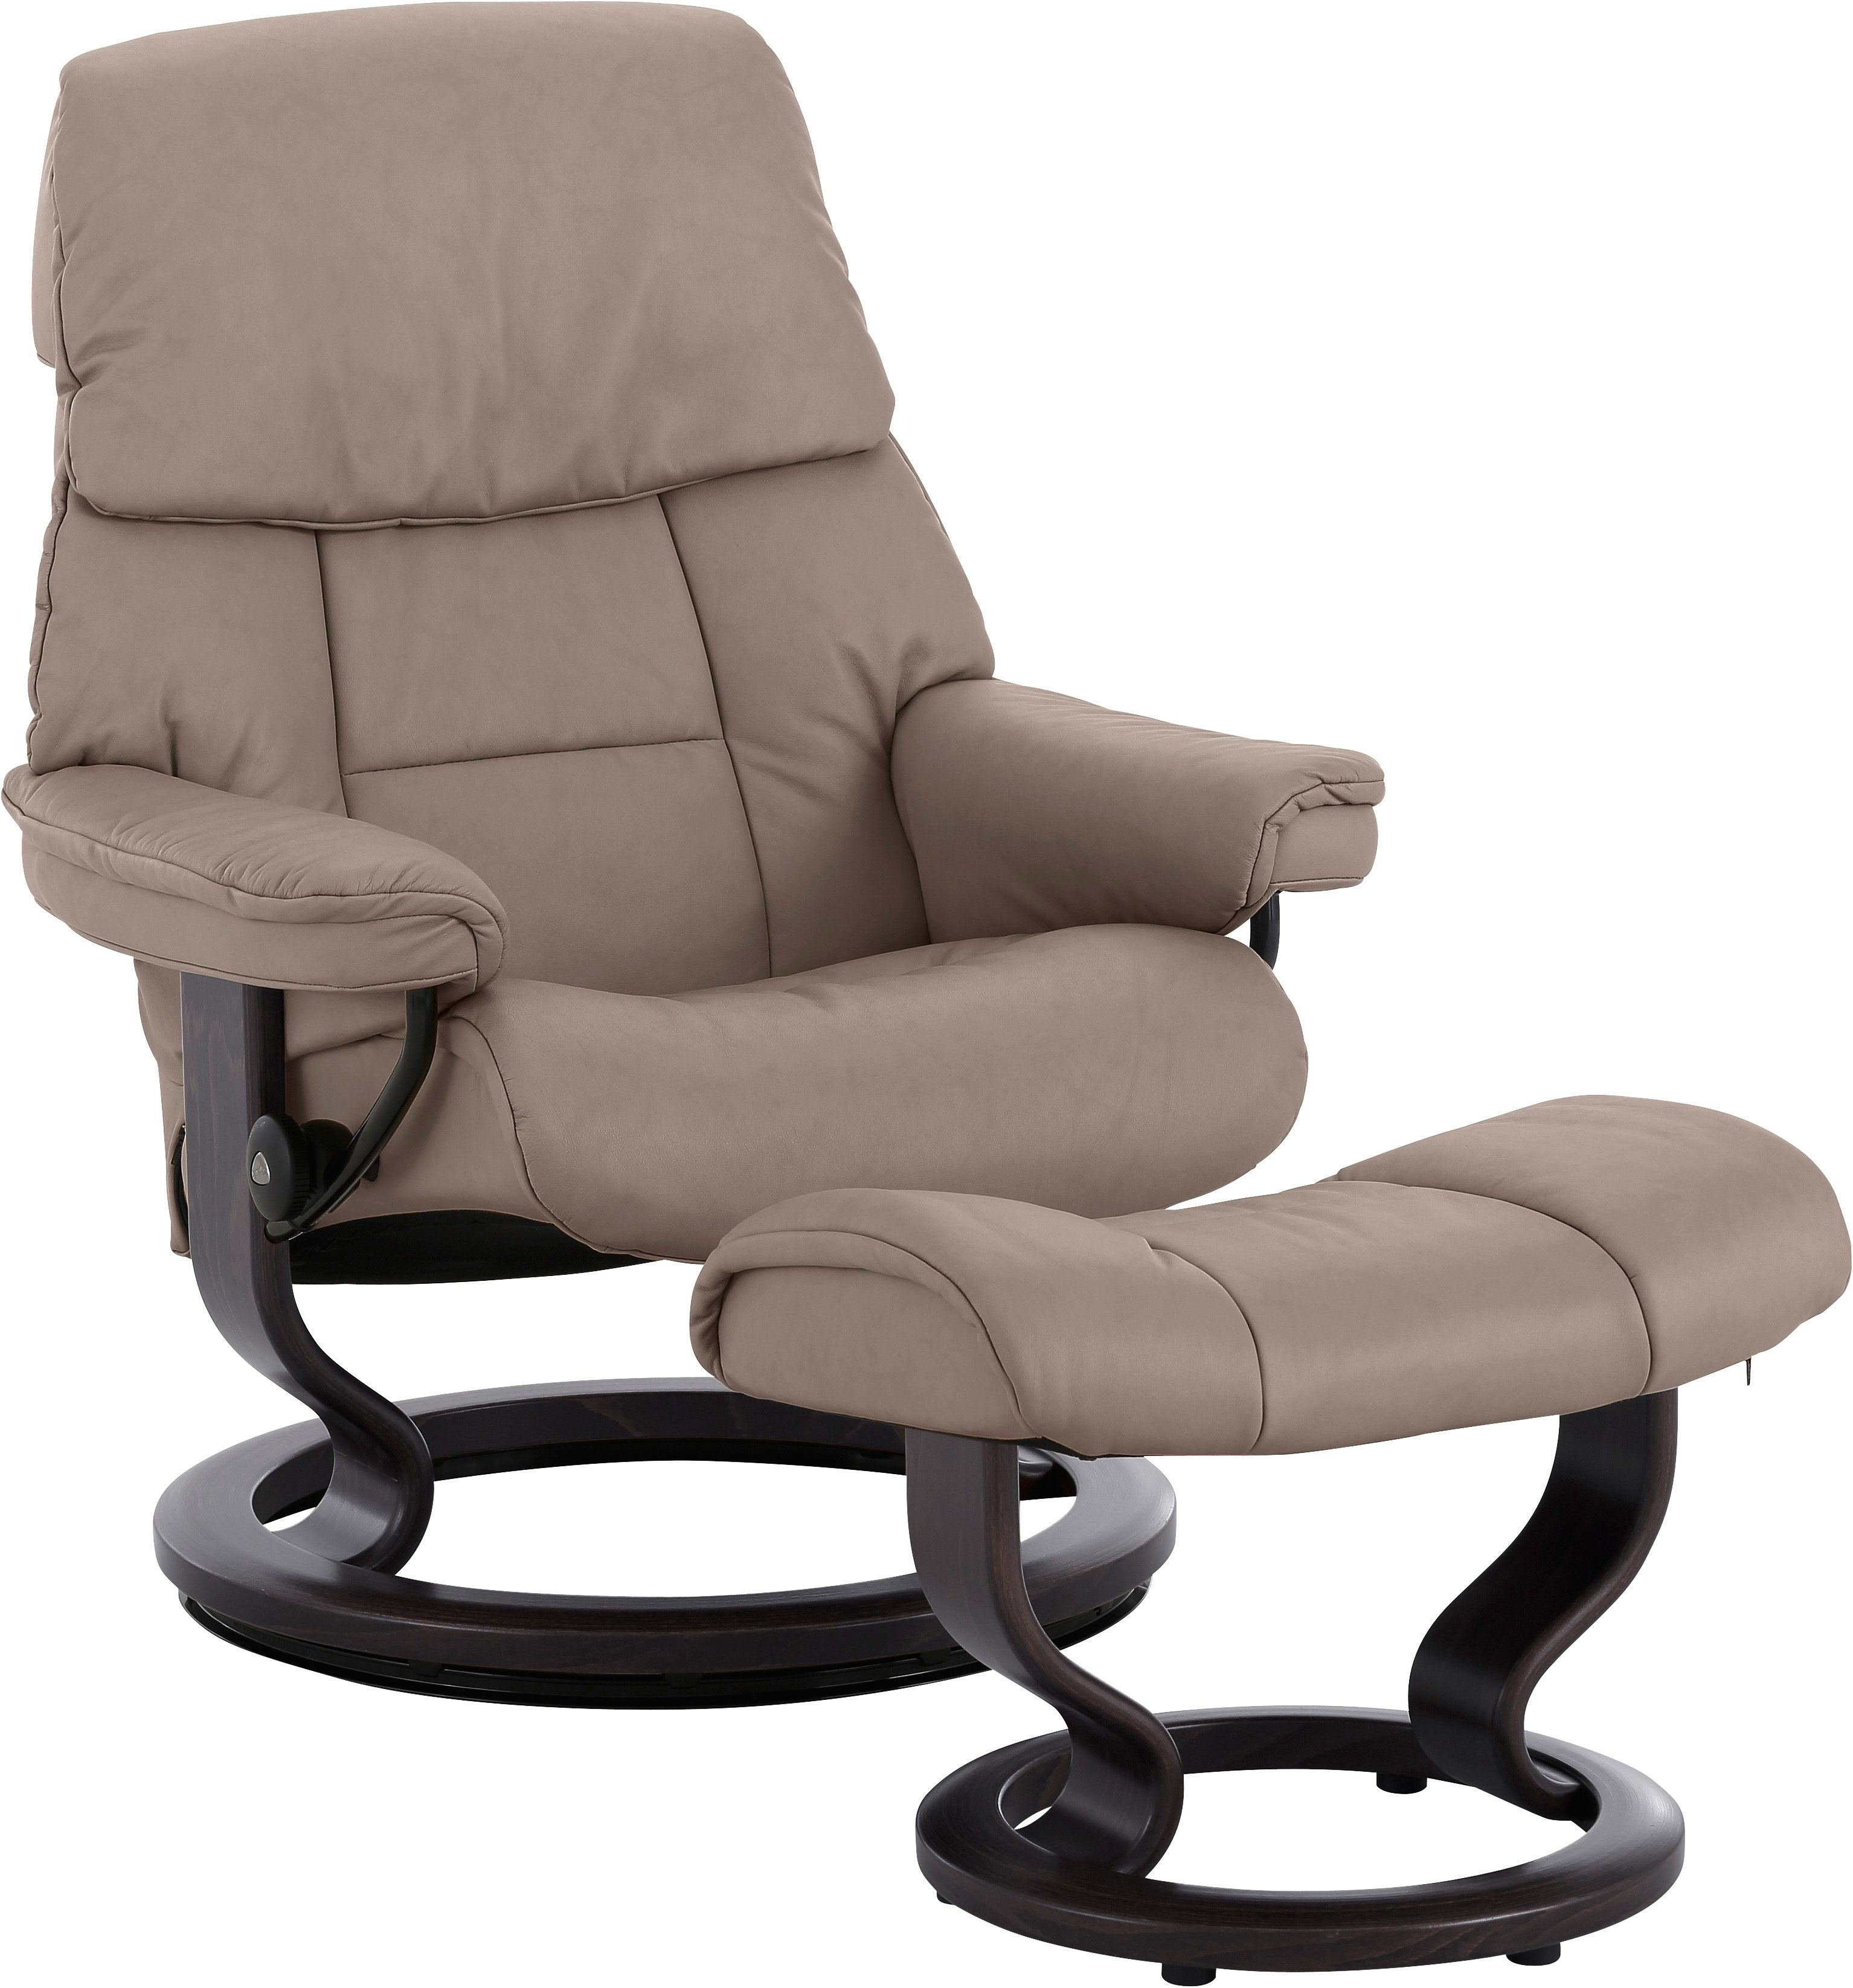 Stressless Ruby Stressless Set Relaxsessel Mit Hocker Ruby Classic Base Größe